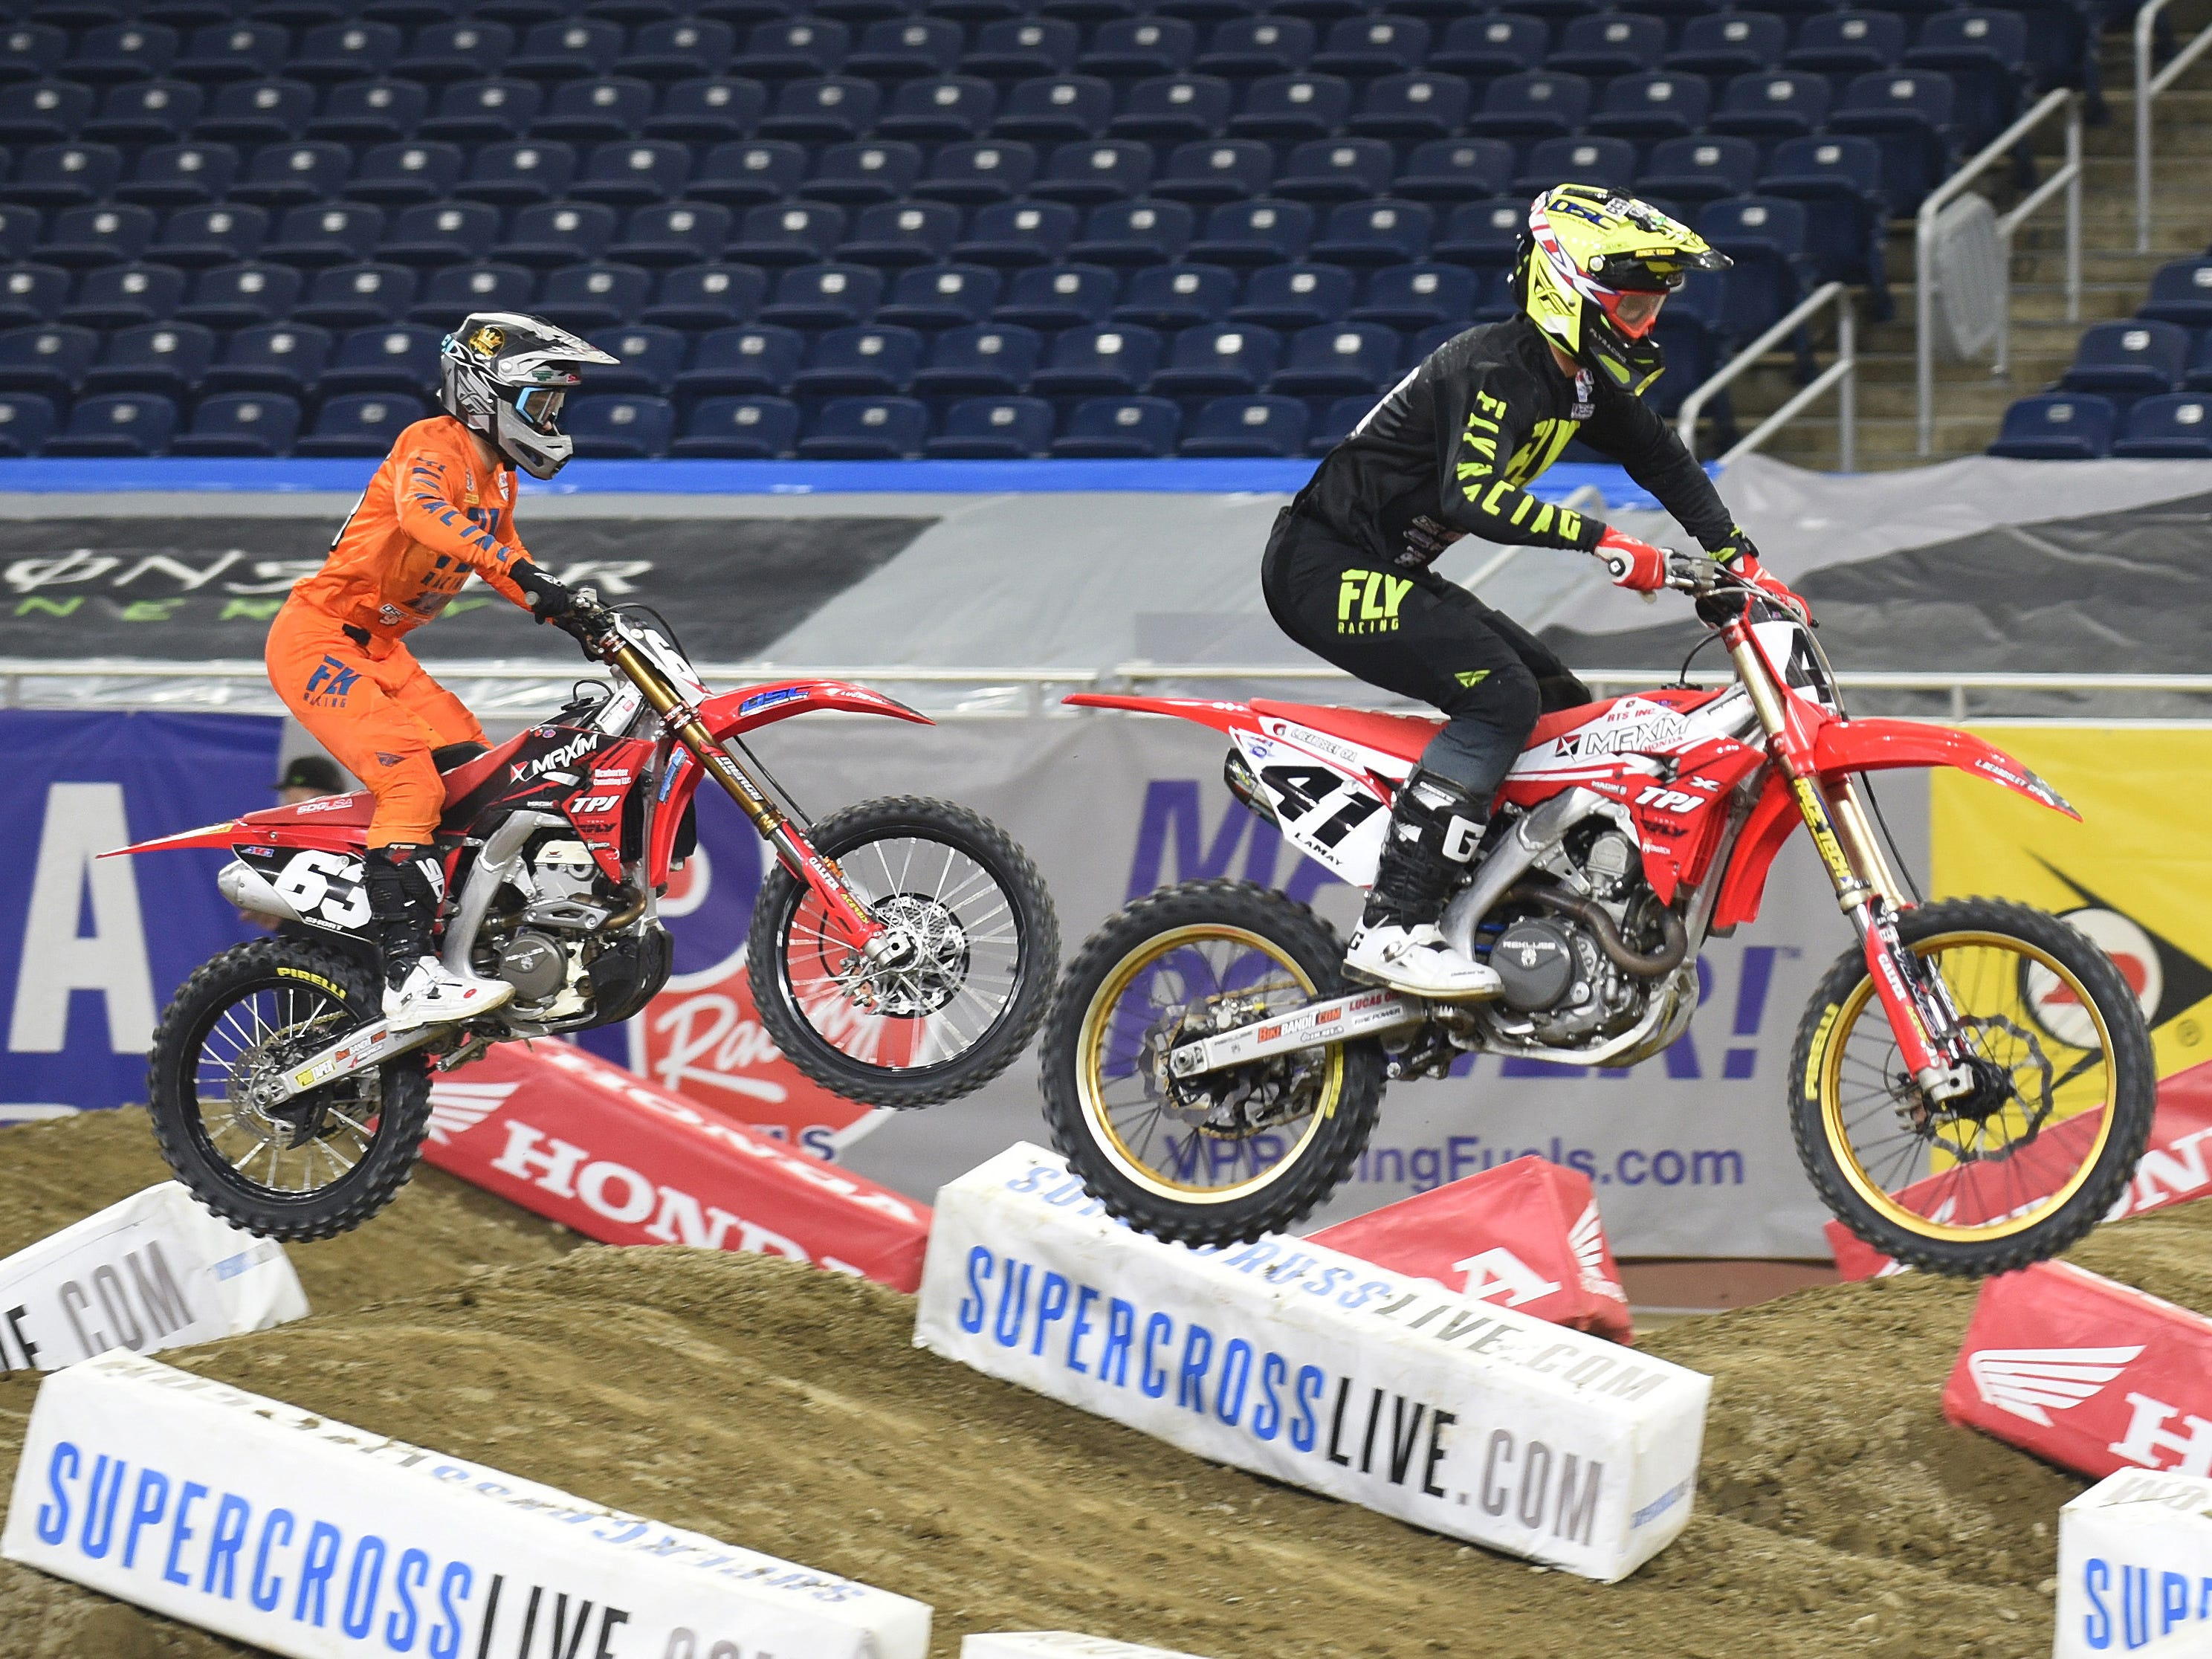 Top Supercross riders John Short (left) and Ben Lamay take to the track during a practice run for the 2019 Monster Energy Supercross at Ford Field in Detroit on Friday, February 22, 2019.